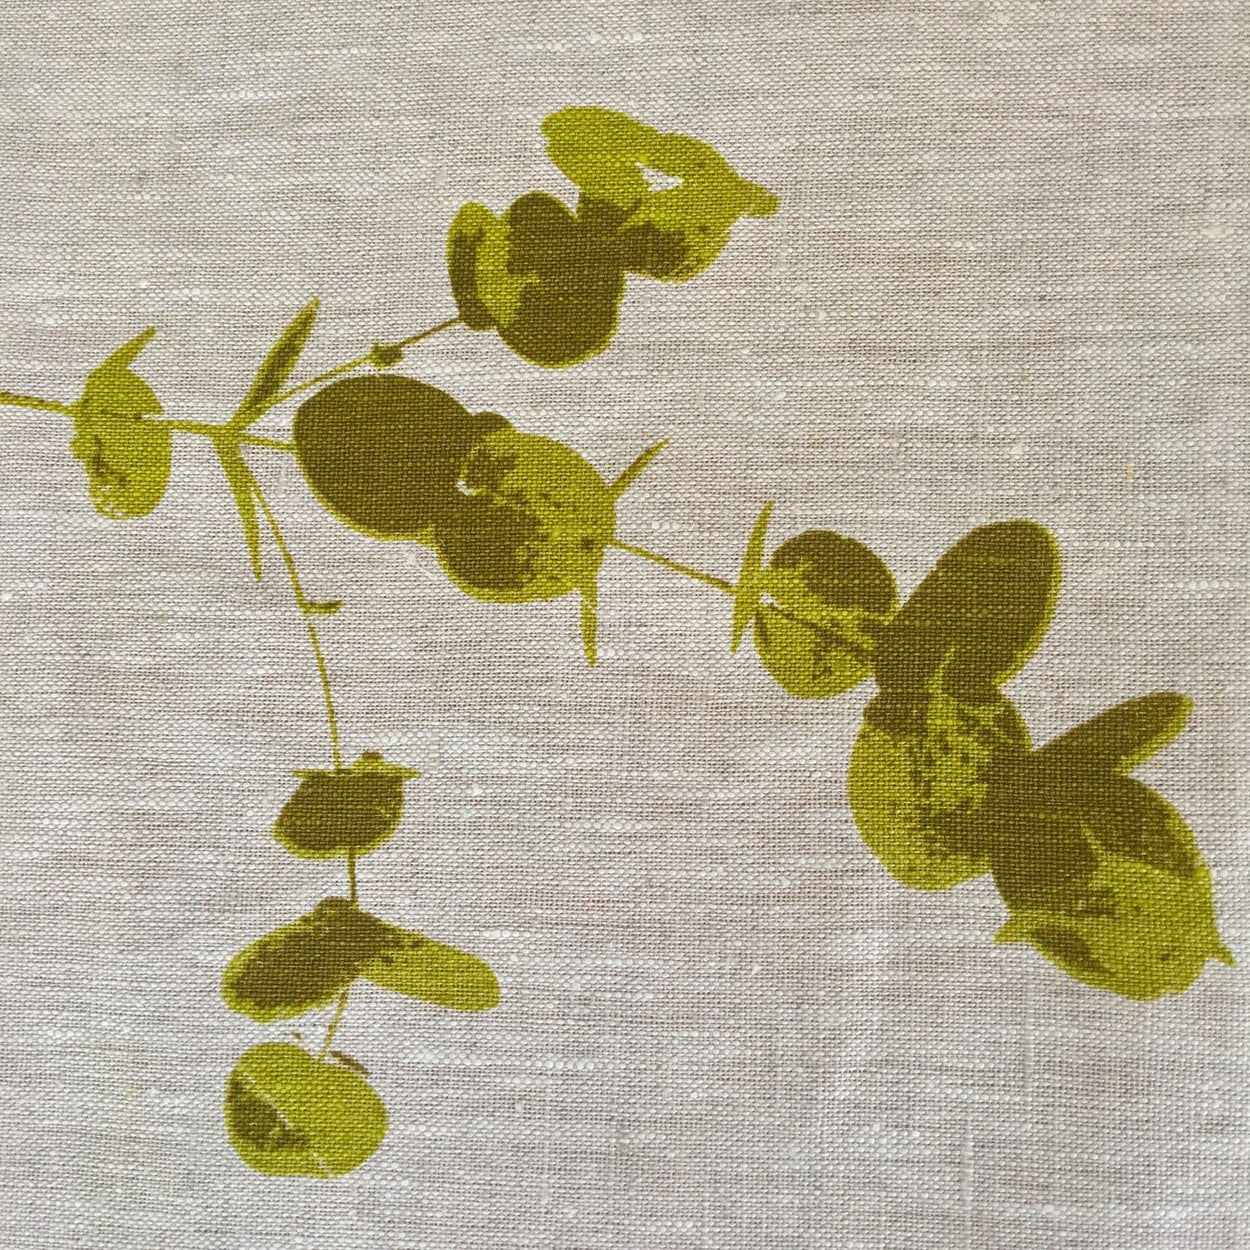 Photo of gum leaves screenprinted on a table runner in close-up..